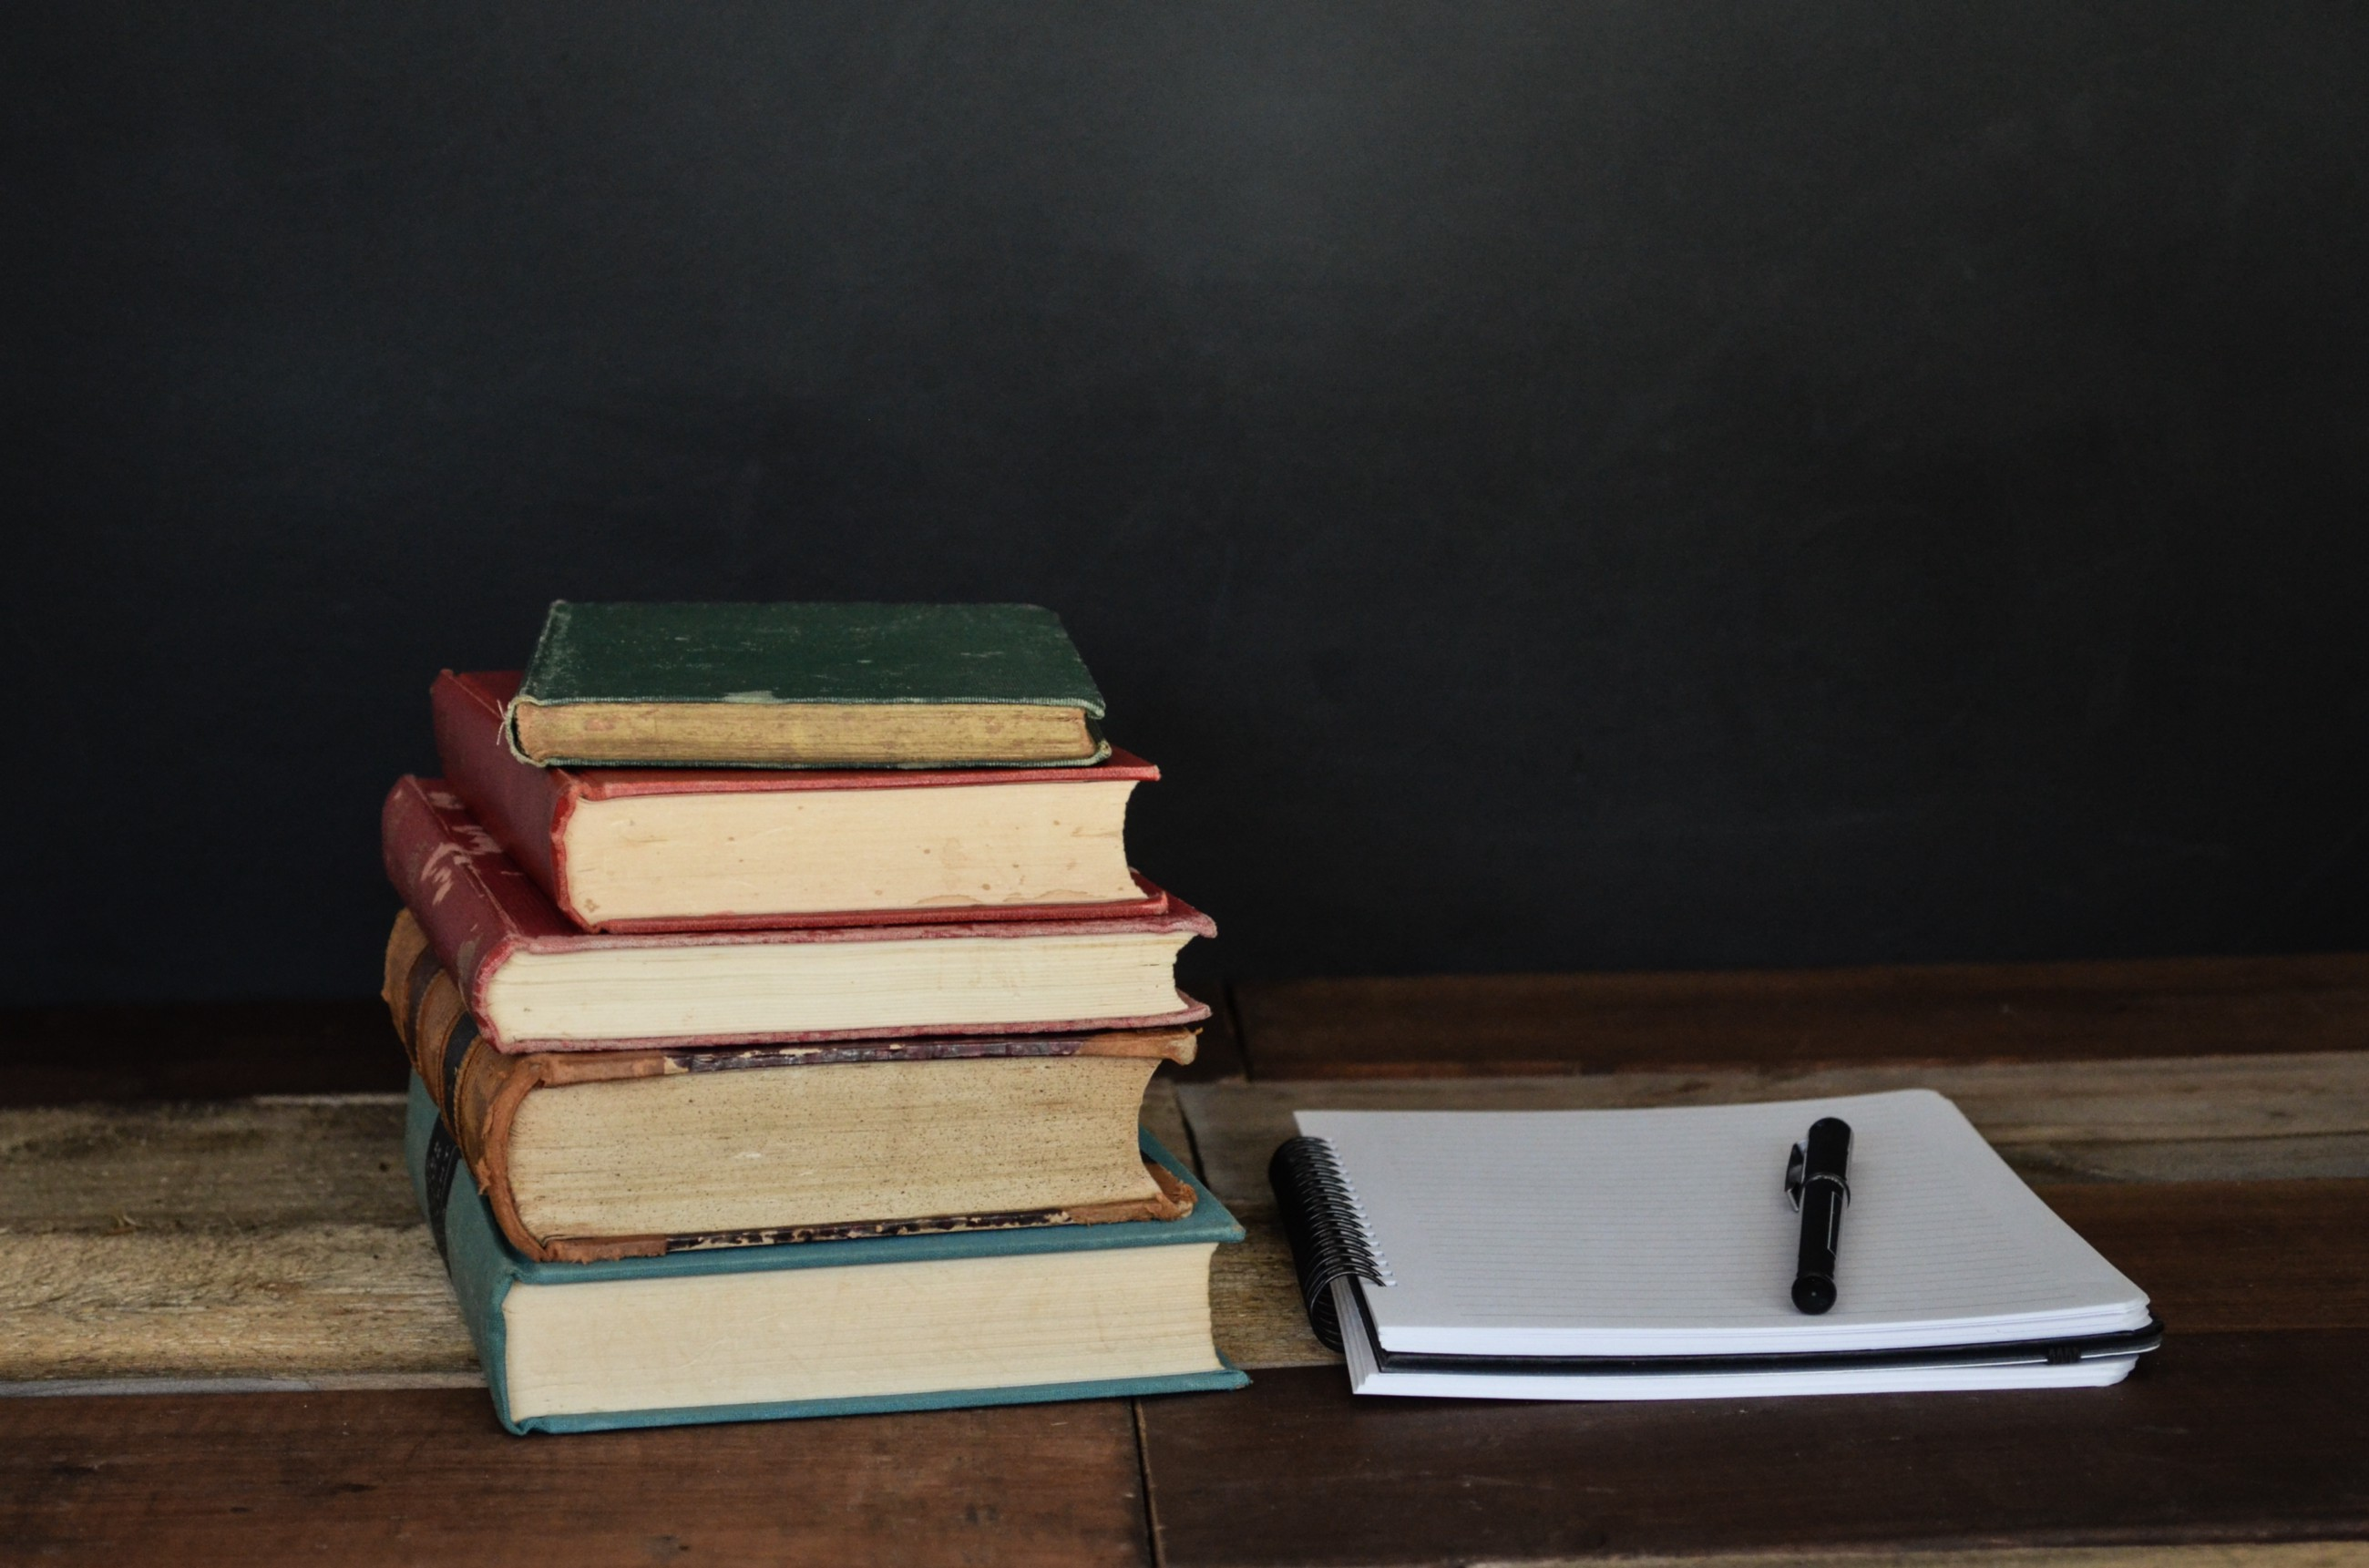 If You Only Read a Few Books to Improve Your Writing, Read These